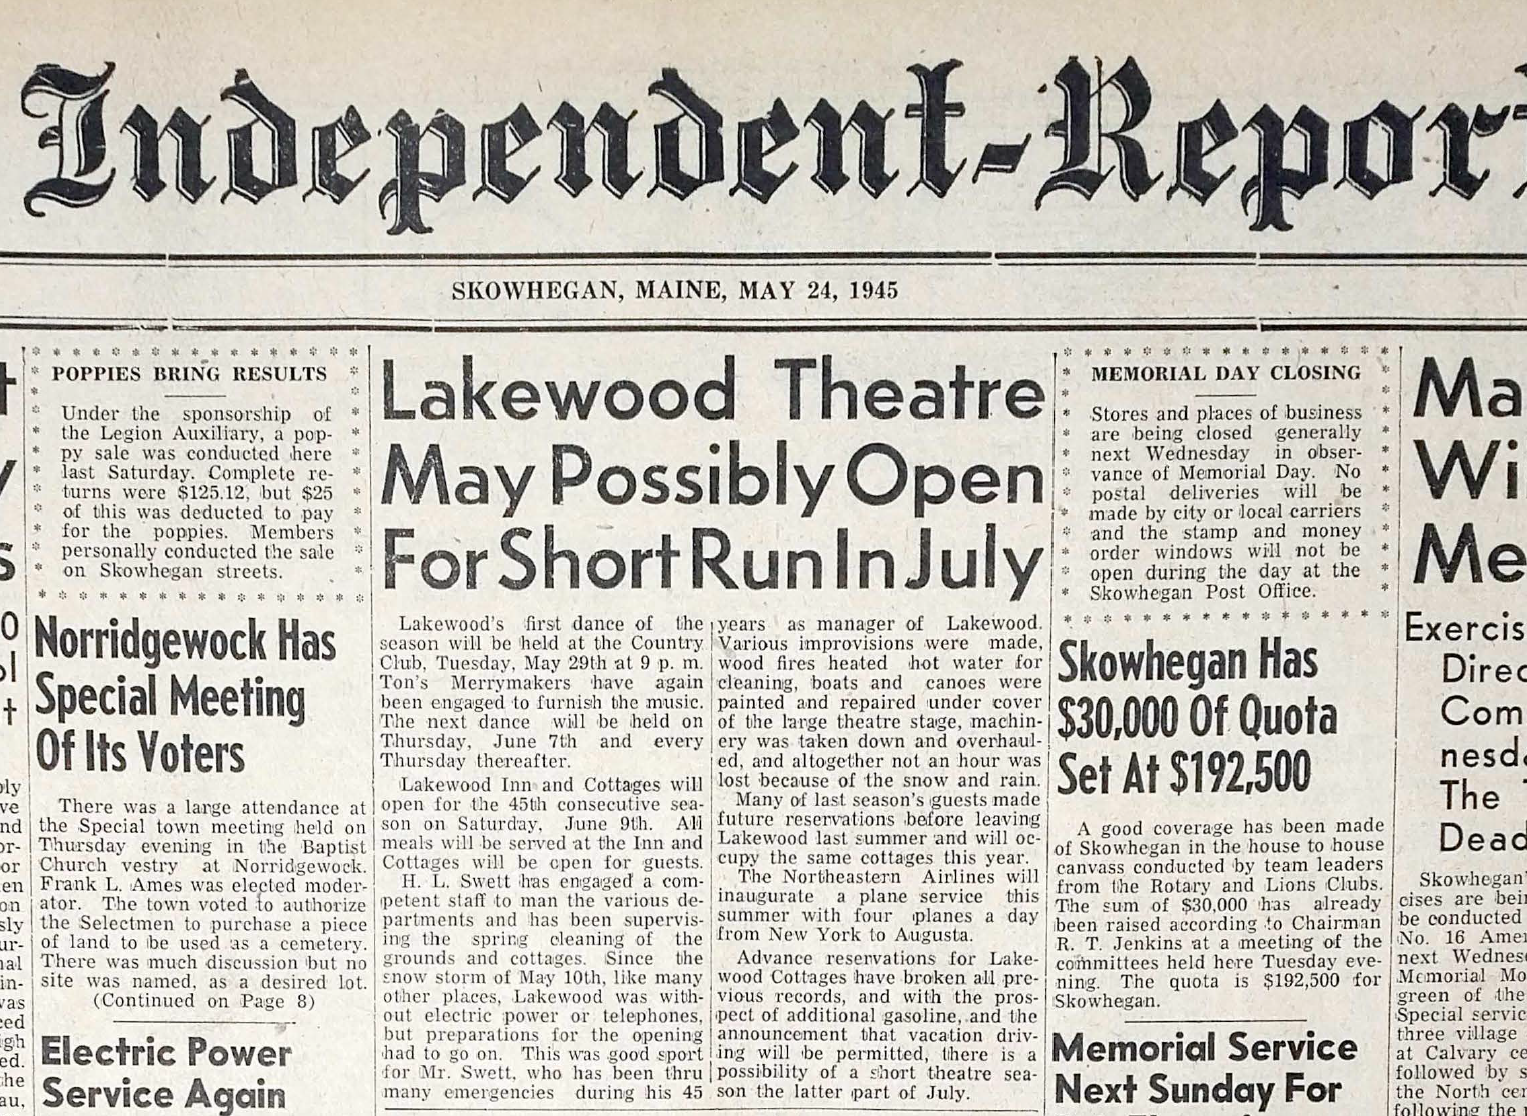 The announcement of Lakewood's opening for a summer theater season - the first since WWII rationing shut down the theater in 1942.